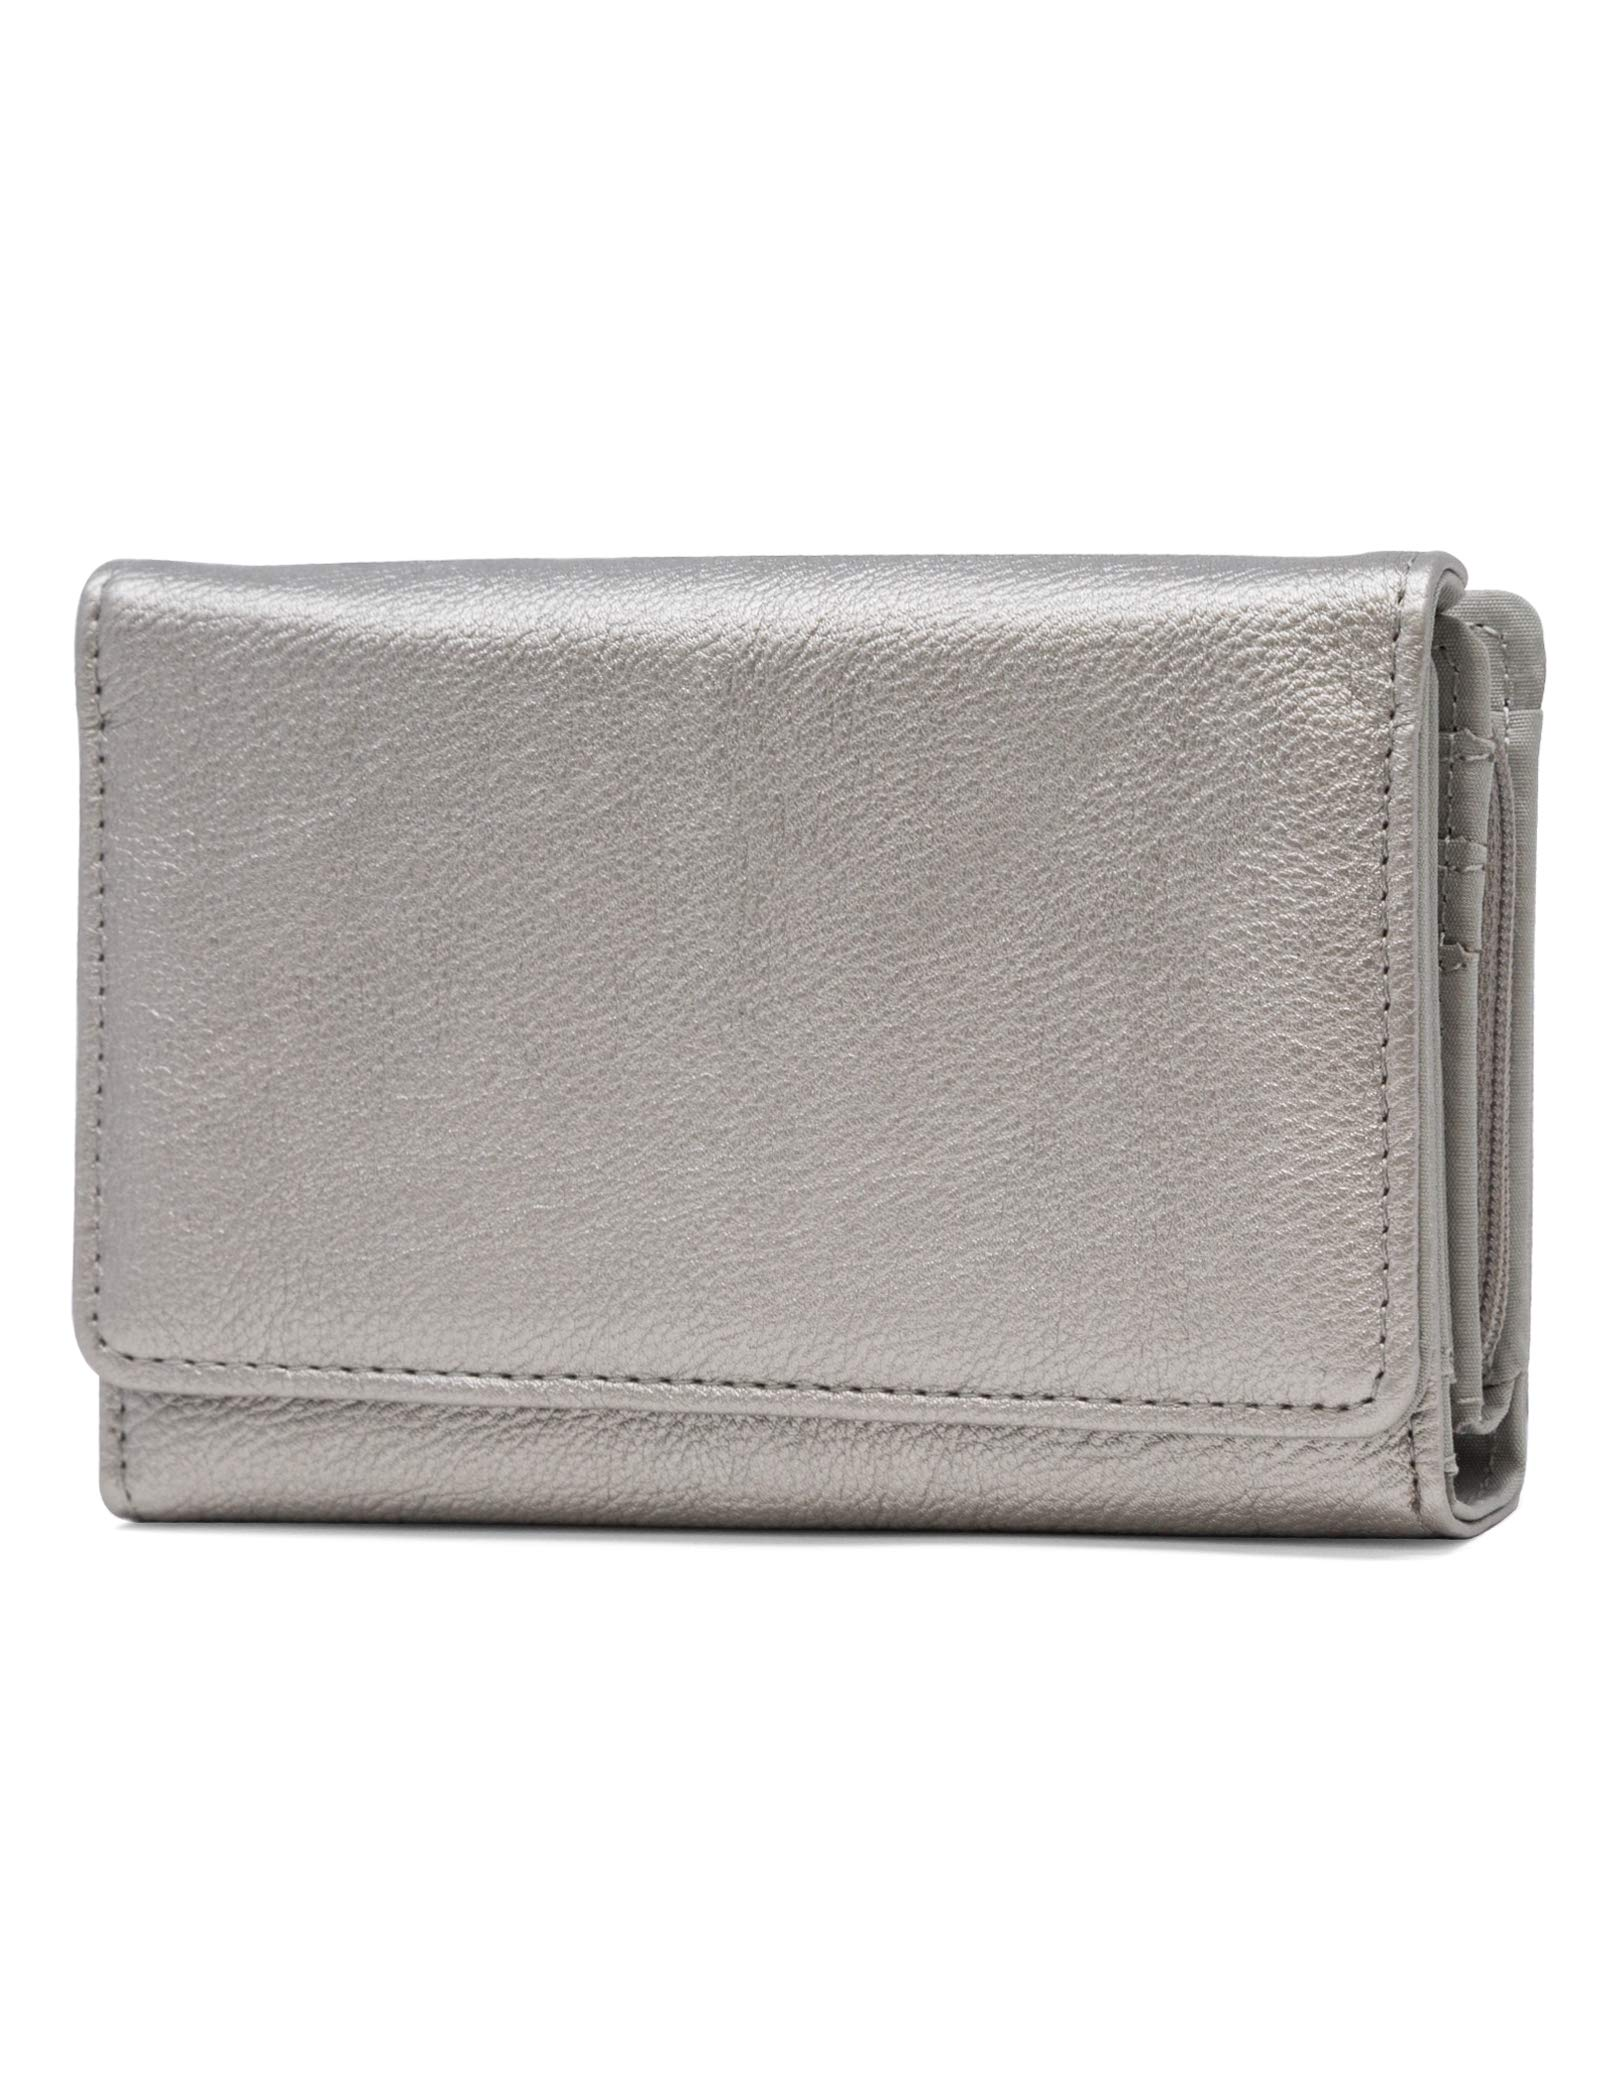 Mundi Small Womens RFID Blocking Wallet Compact Trifold Safe Protection Clutch With Change Purse ((Pewter))